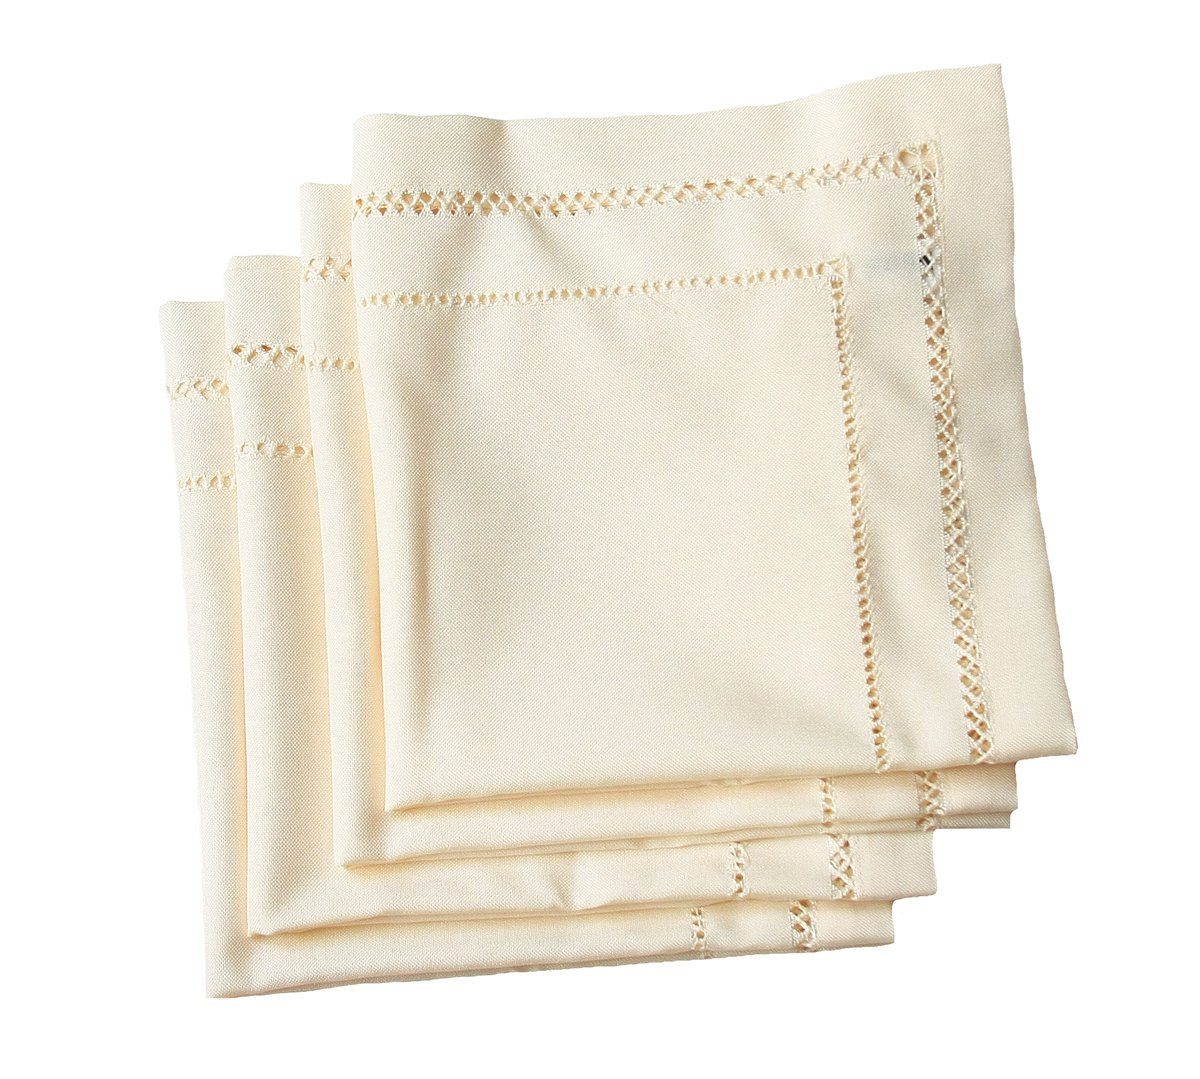 Xia Home Fashions Double Hemstitch Easy Care Napkins, 20 by 20-Inch, Ivory, Set of 4